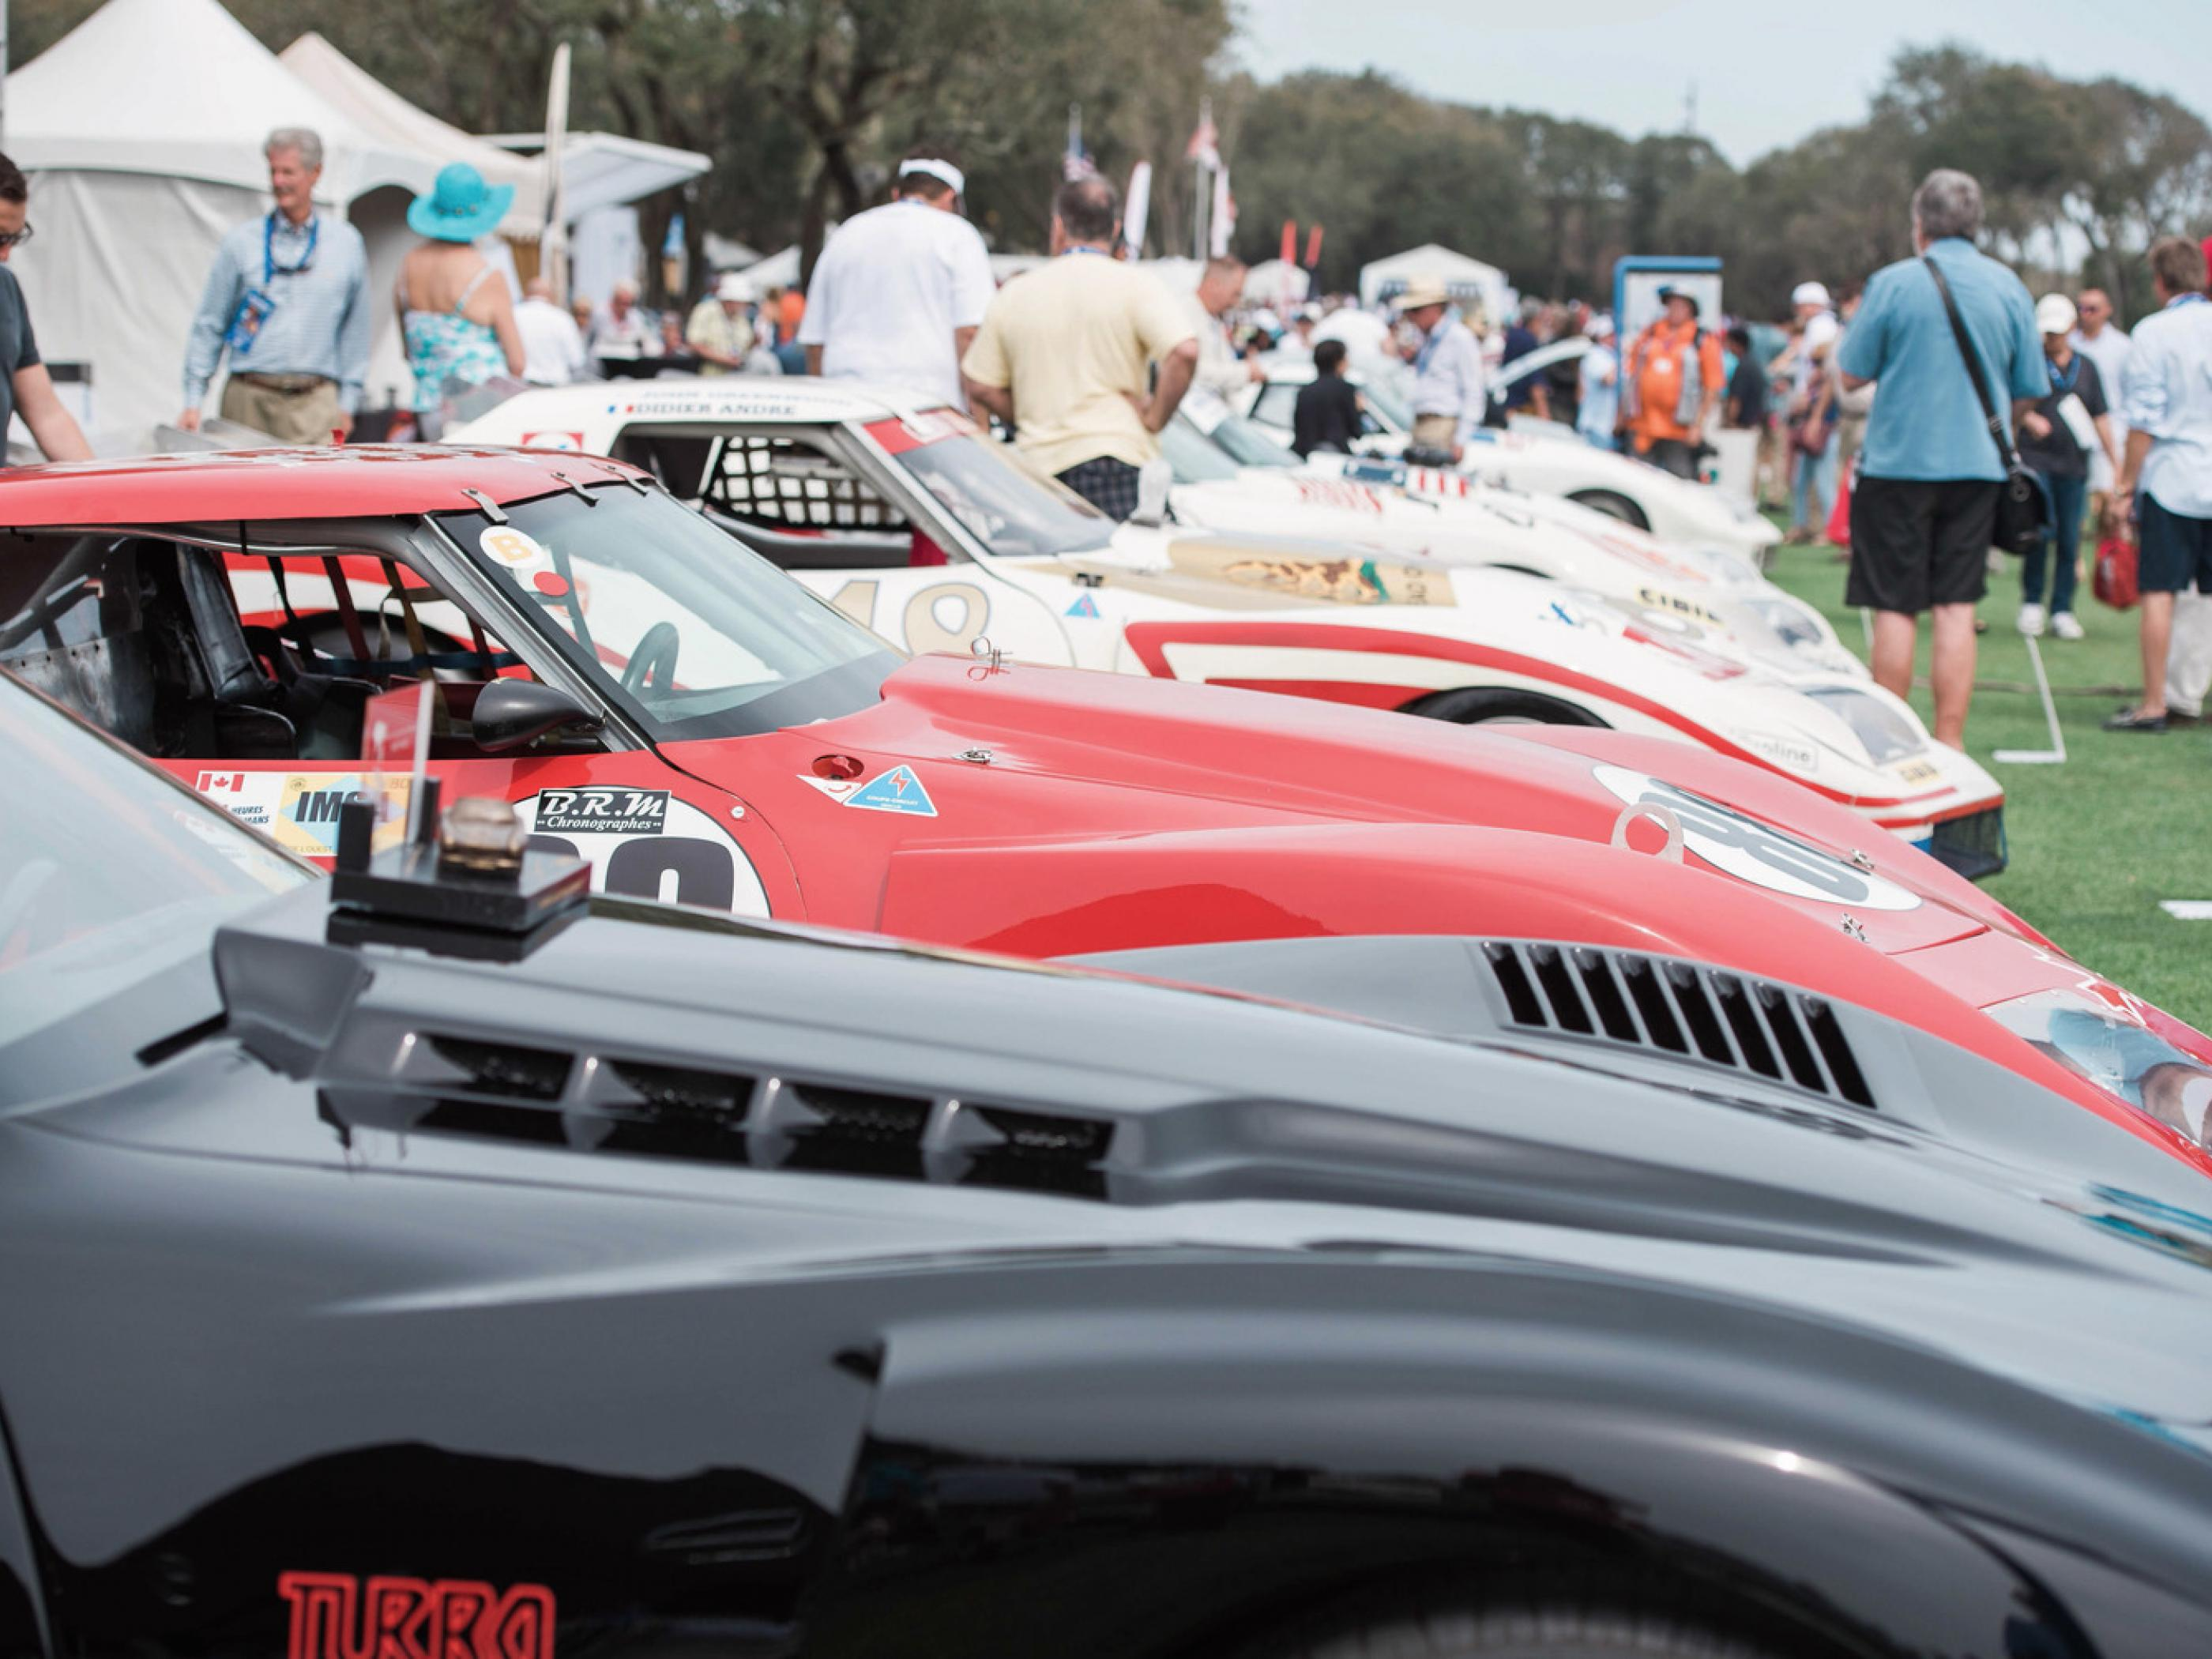 Amelia Island Florida Travel Guide - Green isle park car show